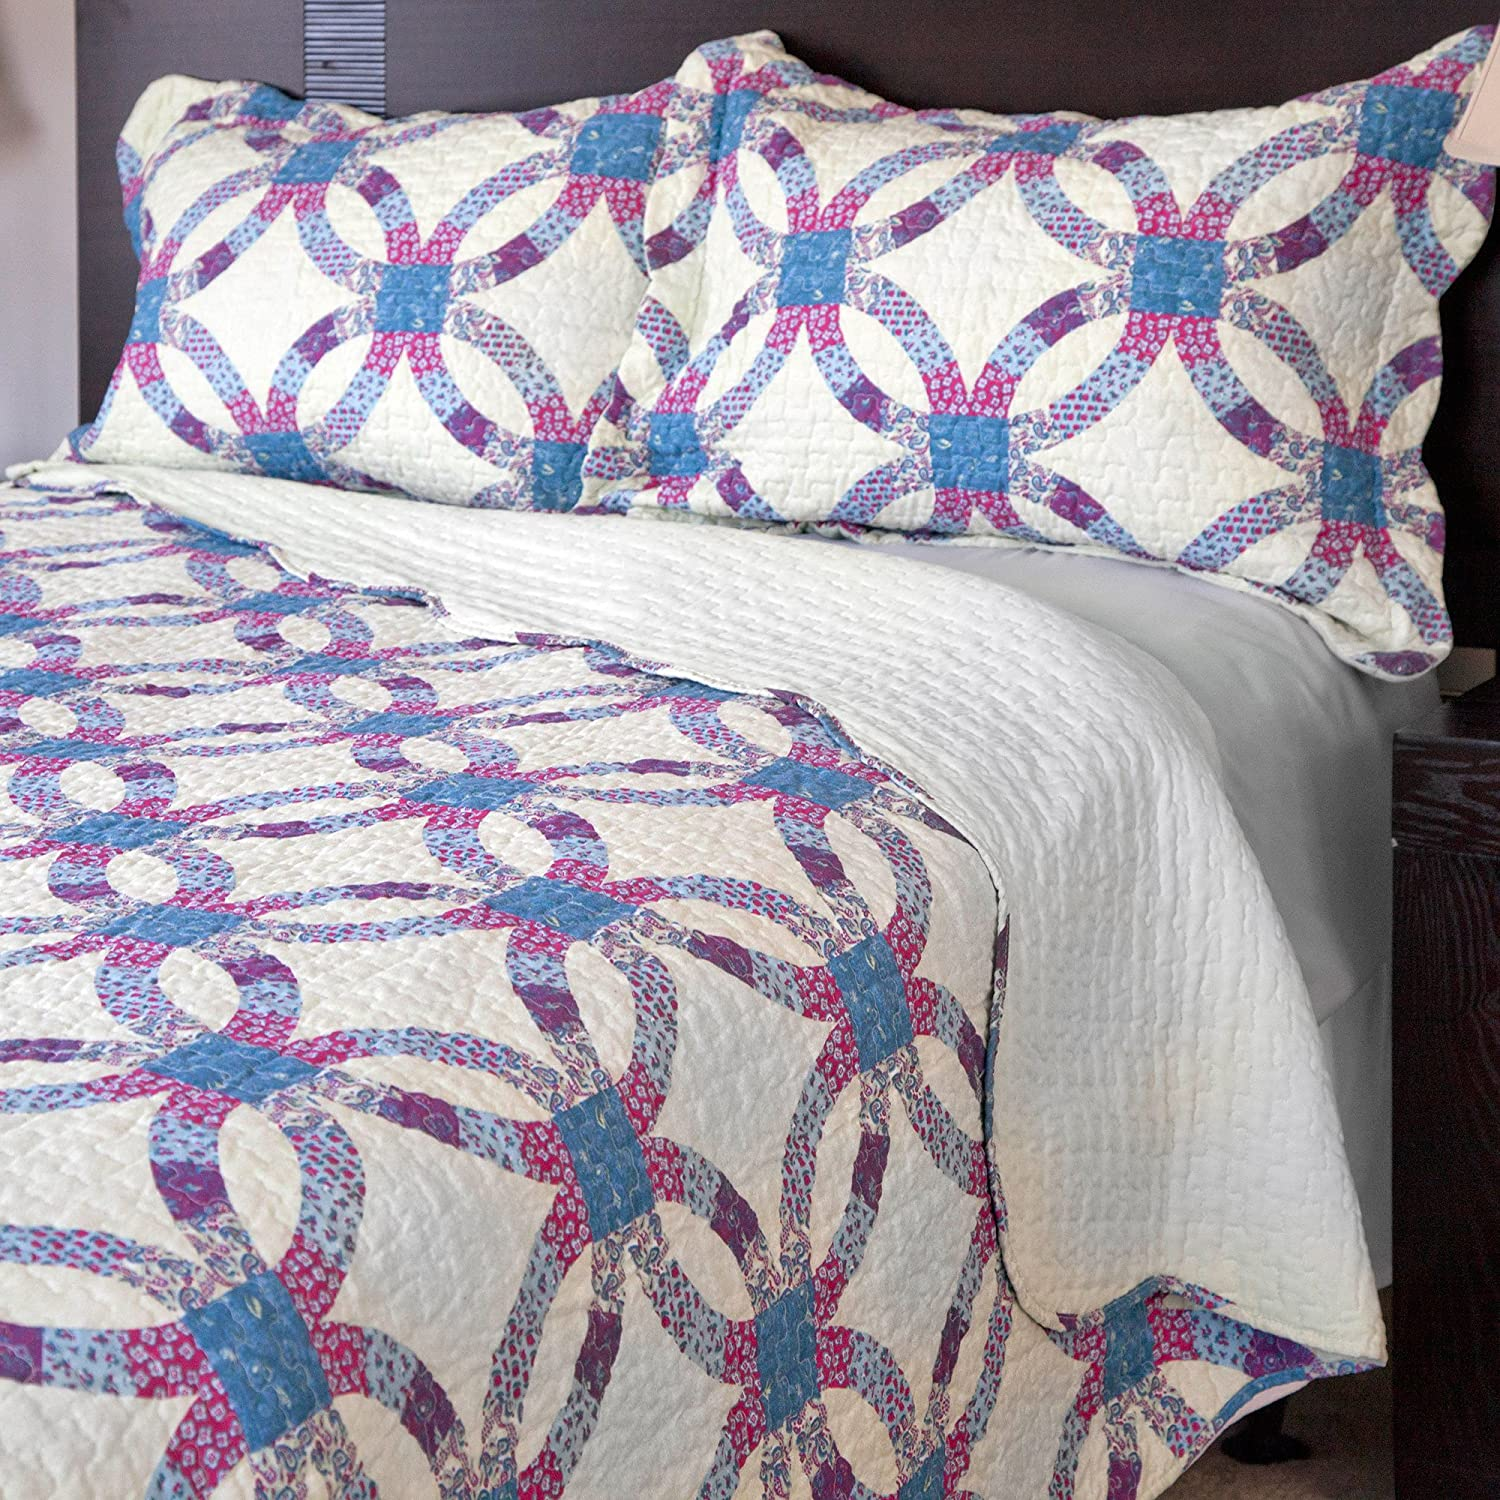 Bedford Home 3-Piece Wedding Ring Quilt Set, King